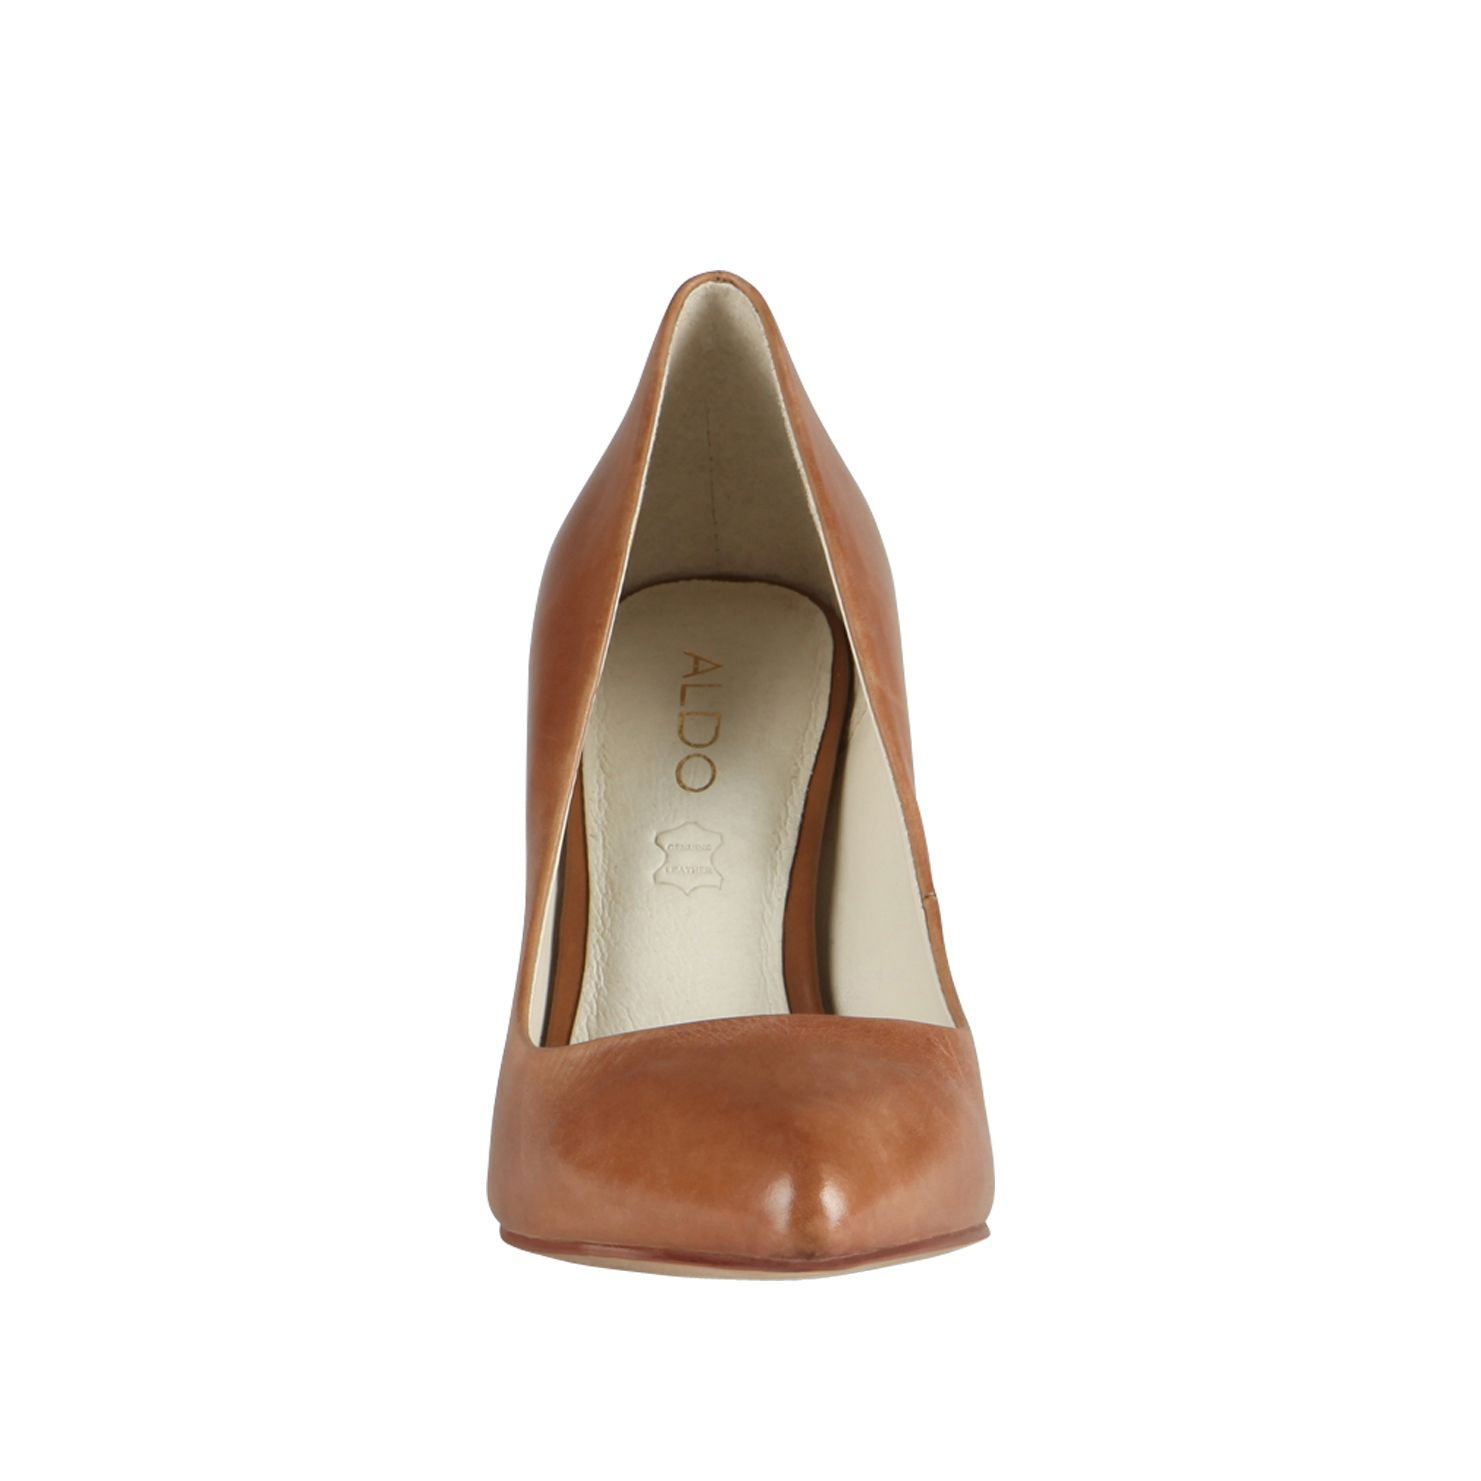 Agriria pointed toe court shoes